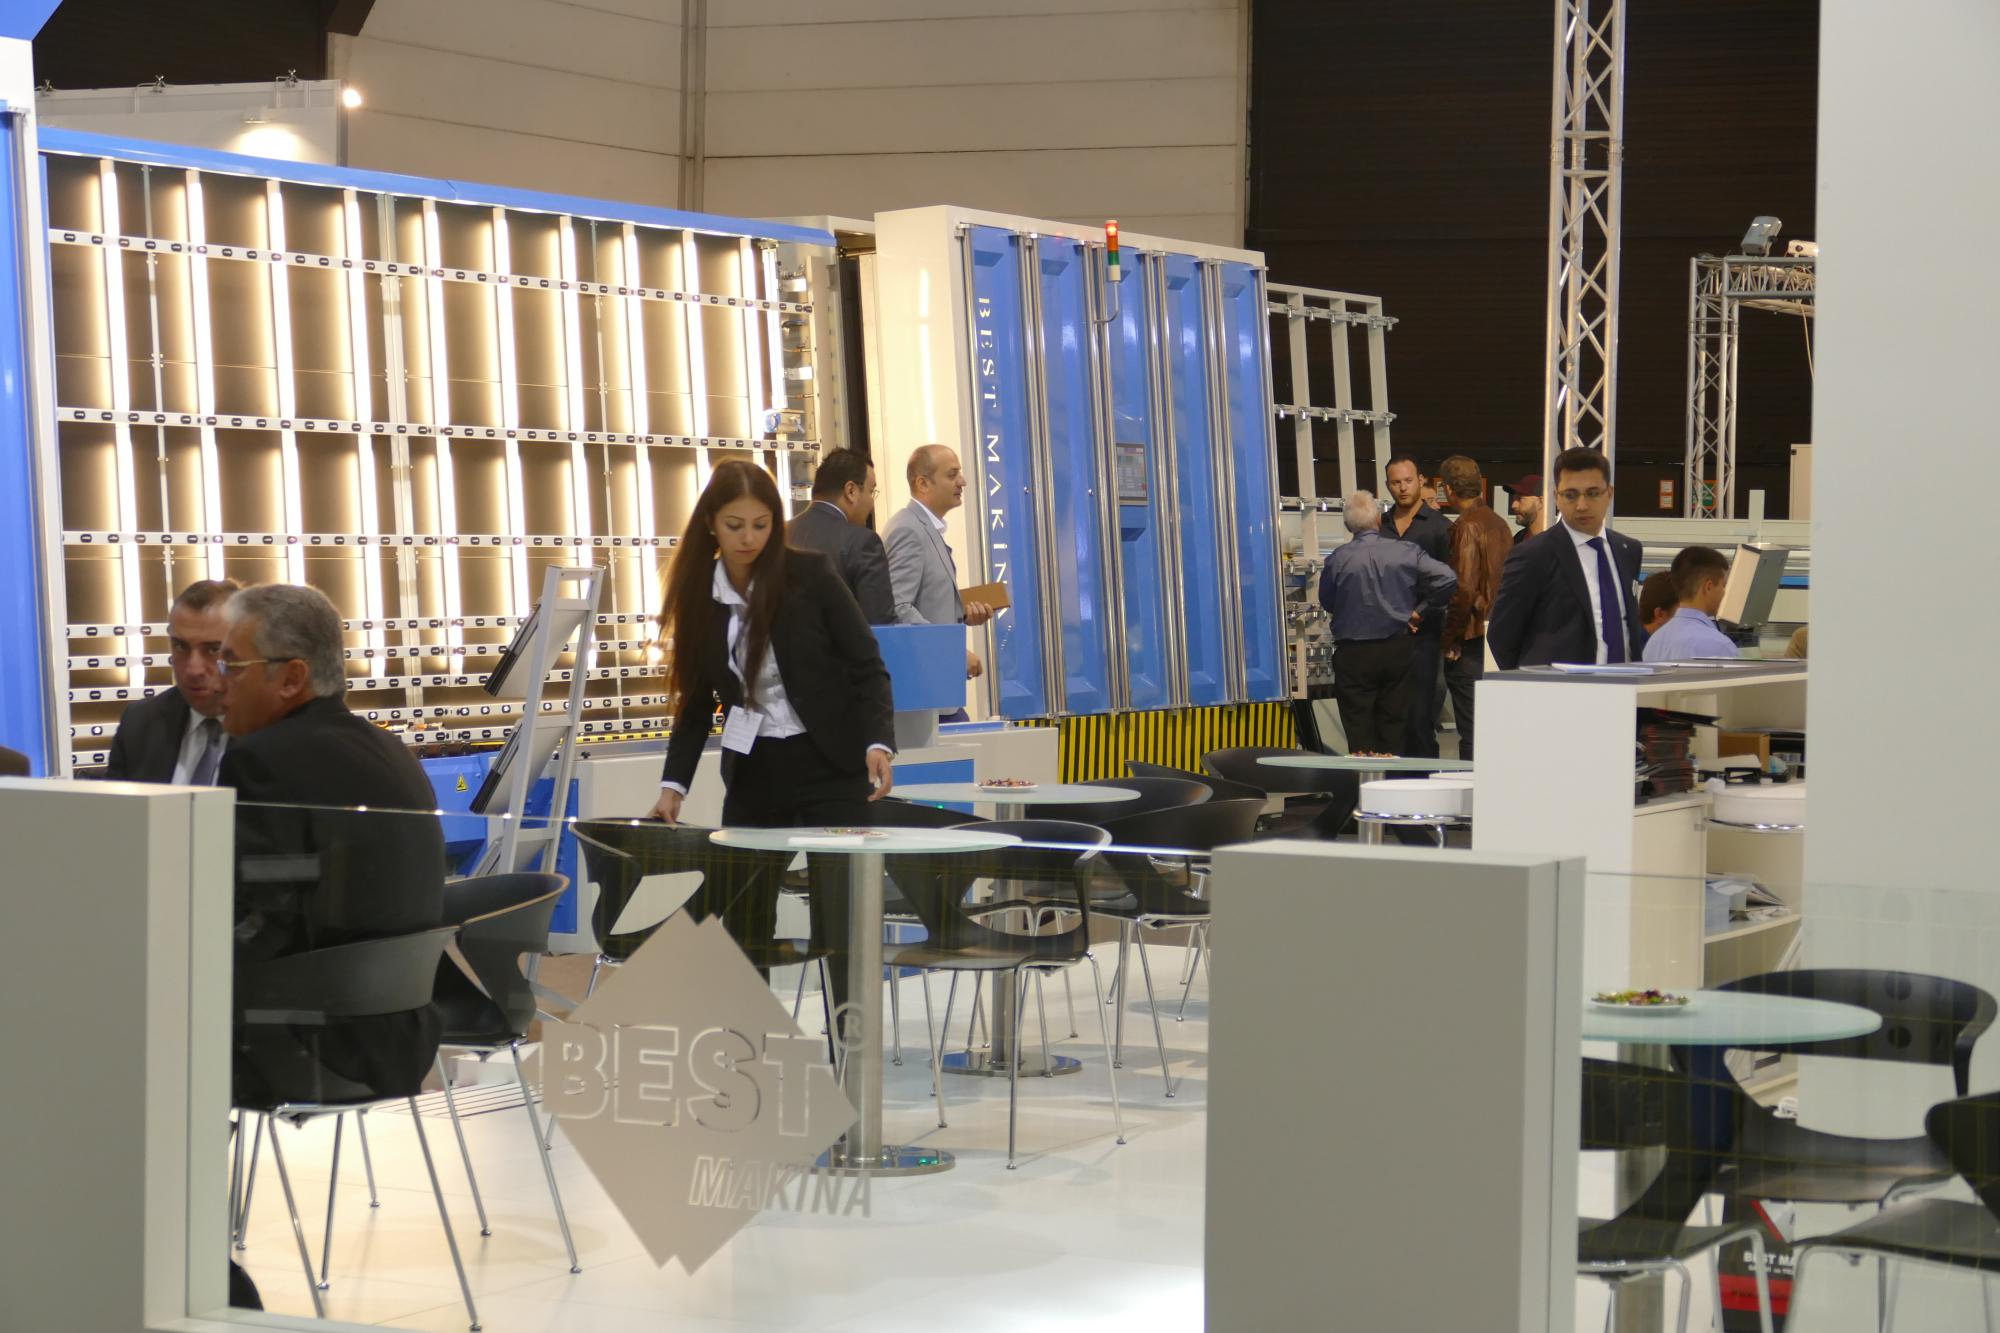 Expo Exhibition Stands Xl : Twist modular exhibition stands